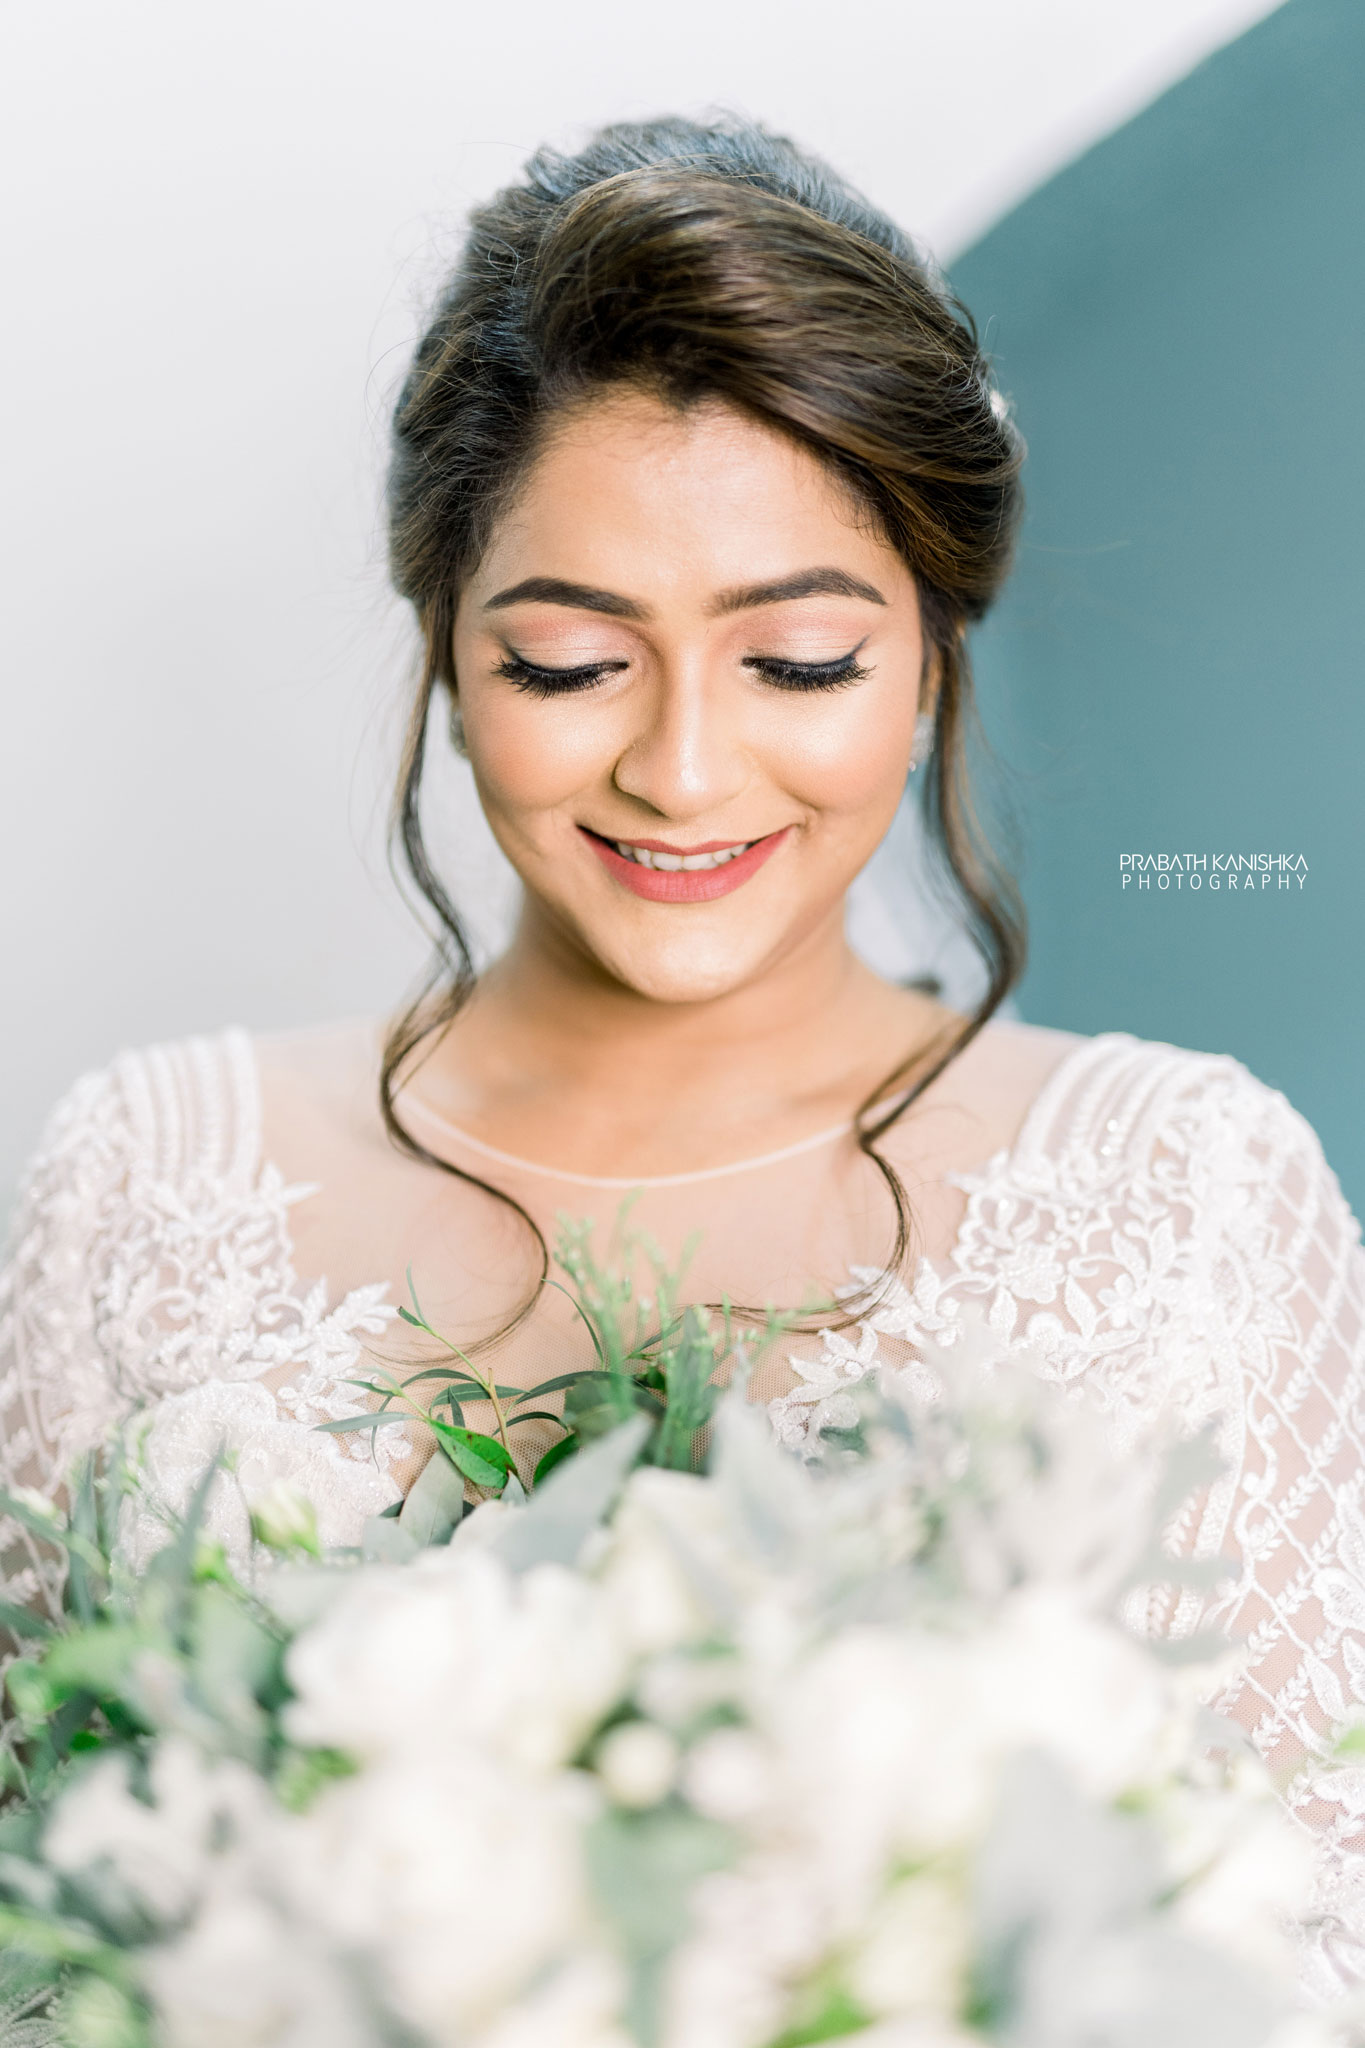 Samara & Shehan - Prabath Kanishka Wedding Photography